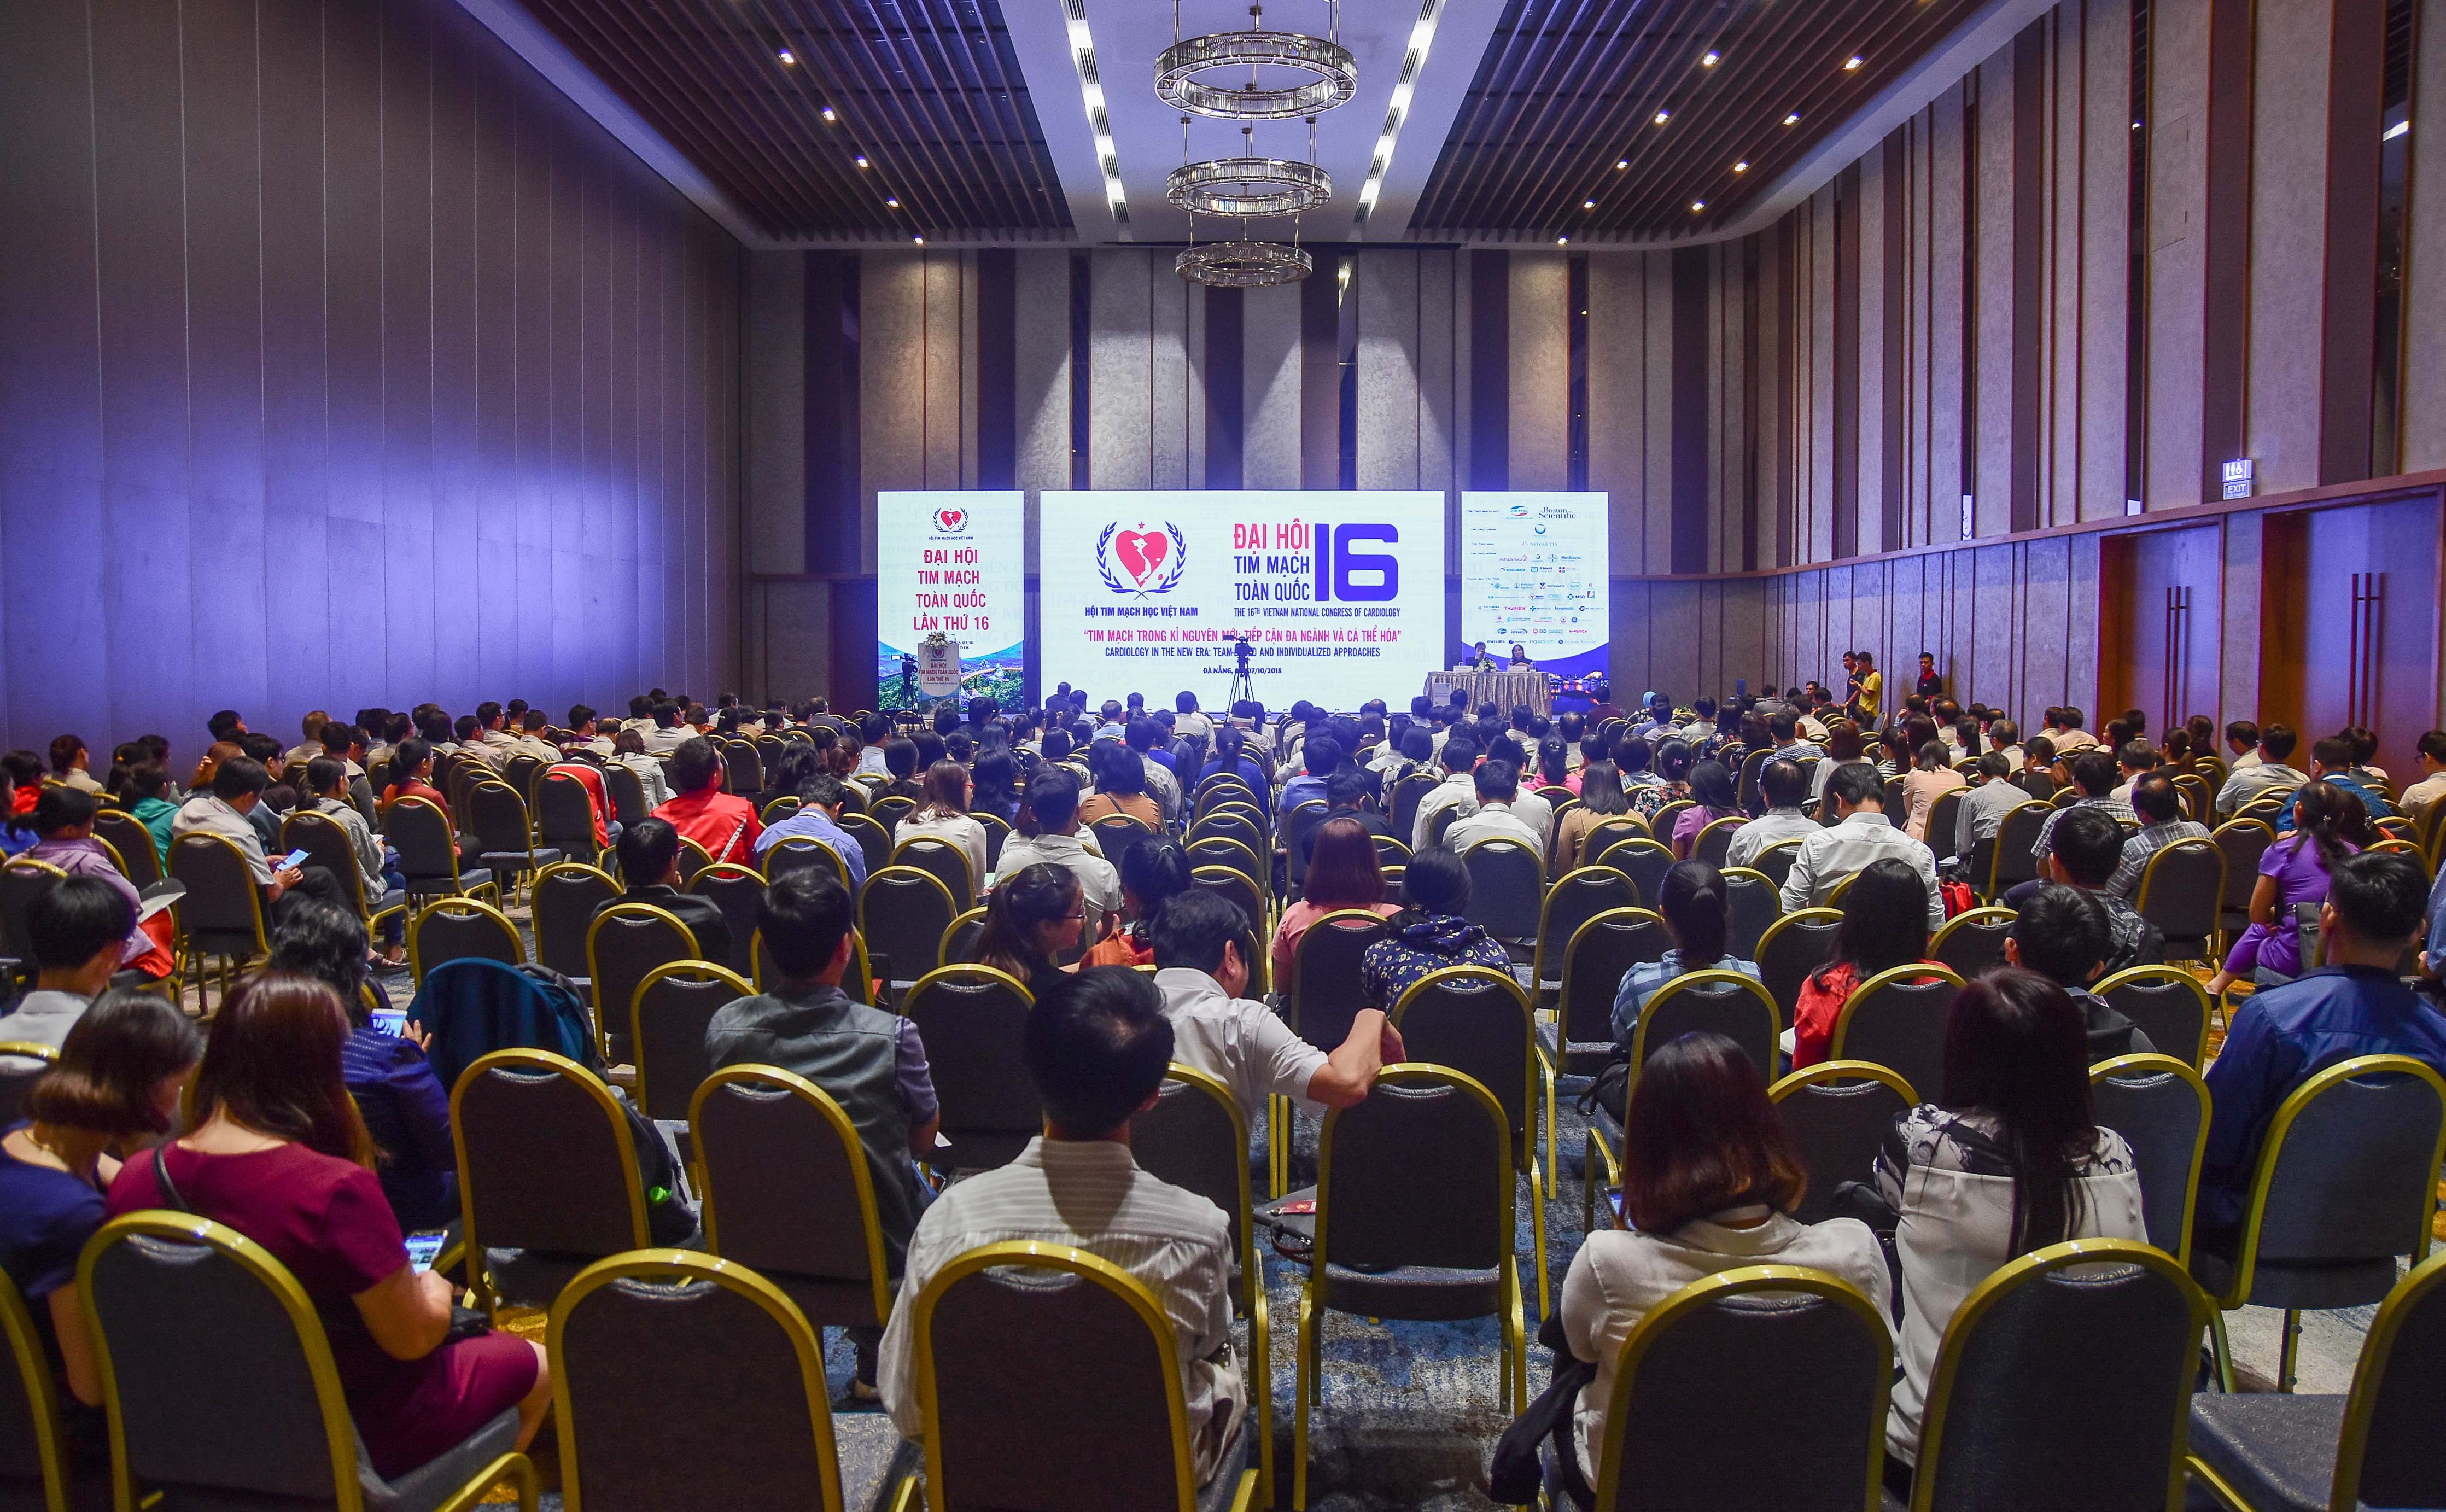 THE 16th VIETNAM NATIONAL CONGRESS OF CARDIOLOGY